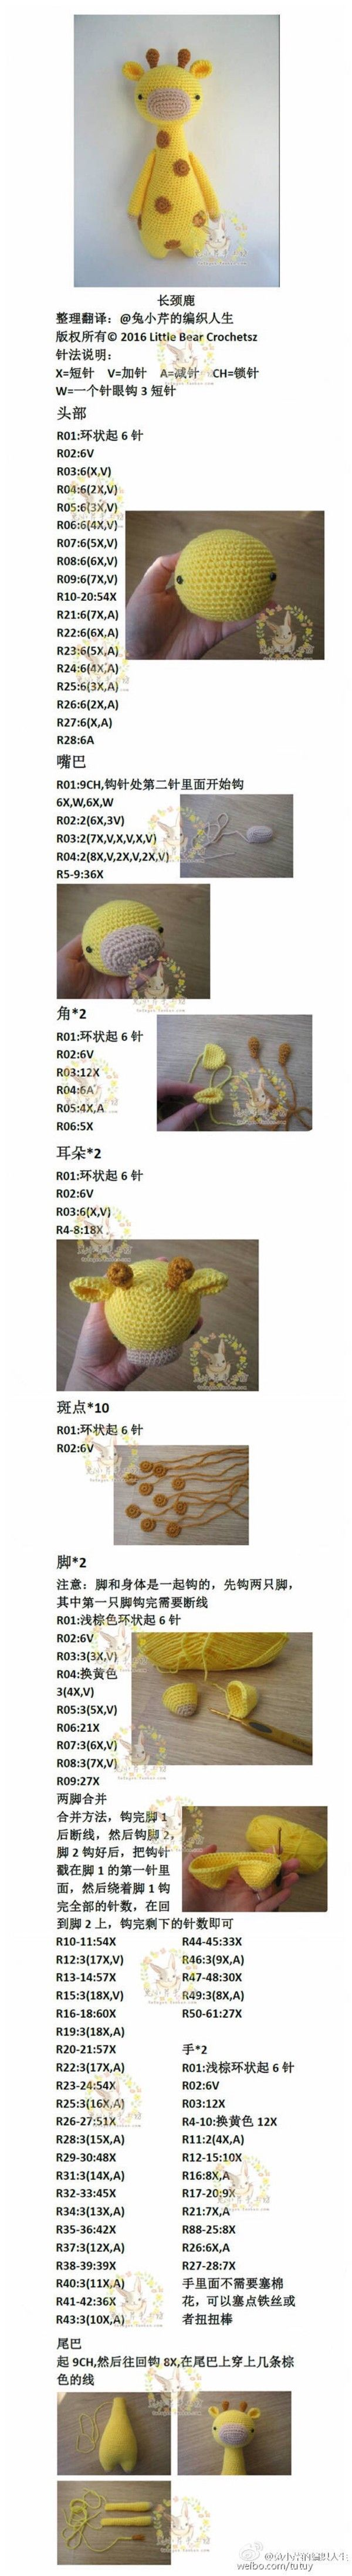 I know it's all in Japanese but an experienced crocheter might be able to work it out from the pictures and numbers.